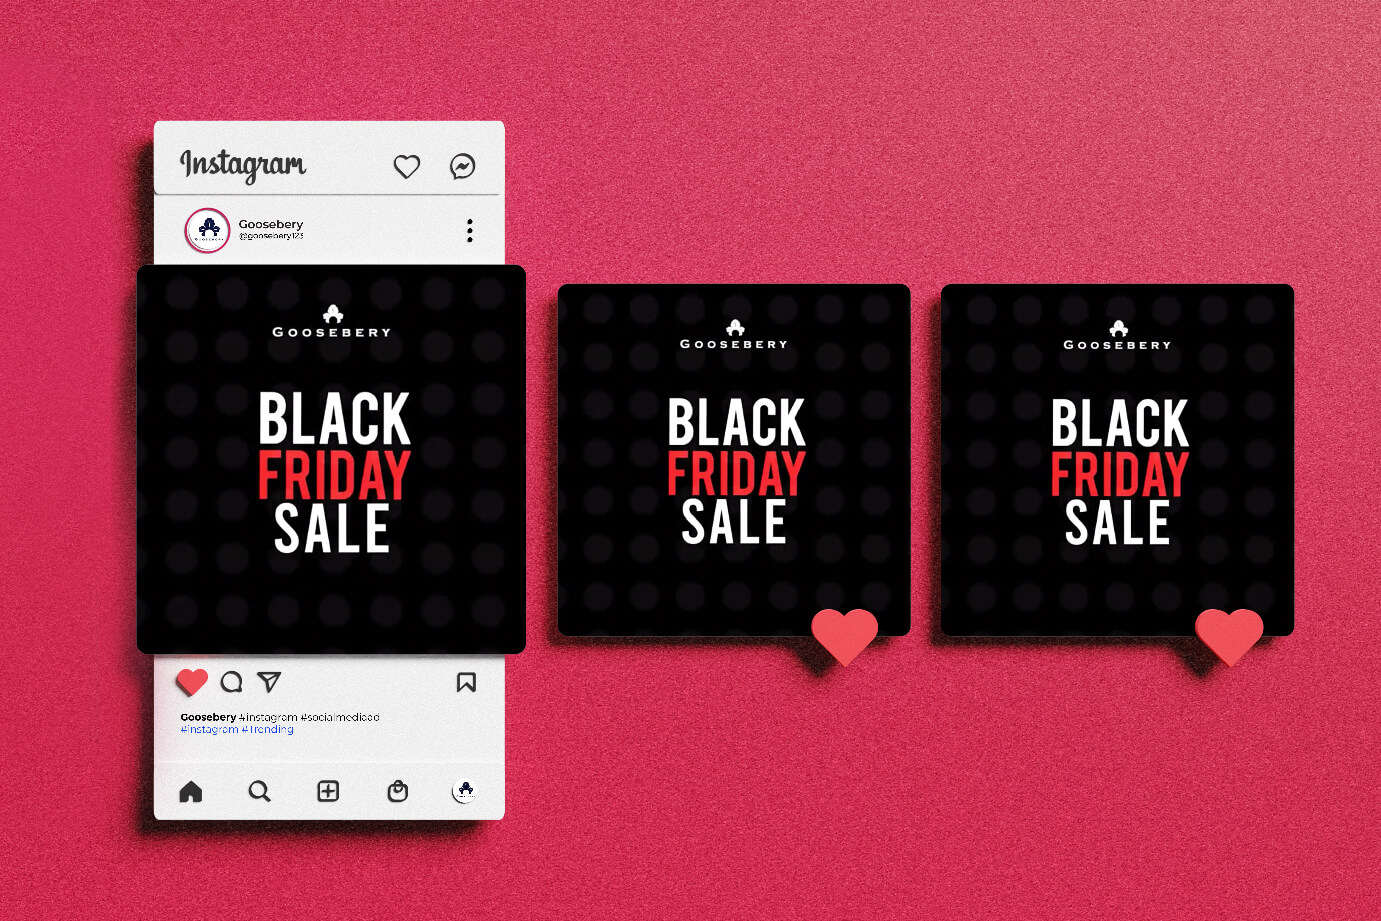 Goosebery Black Friday Sale ad by Sajid Sulaiman